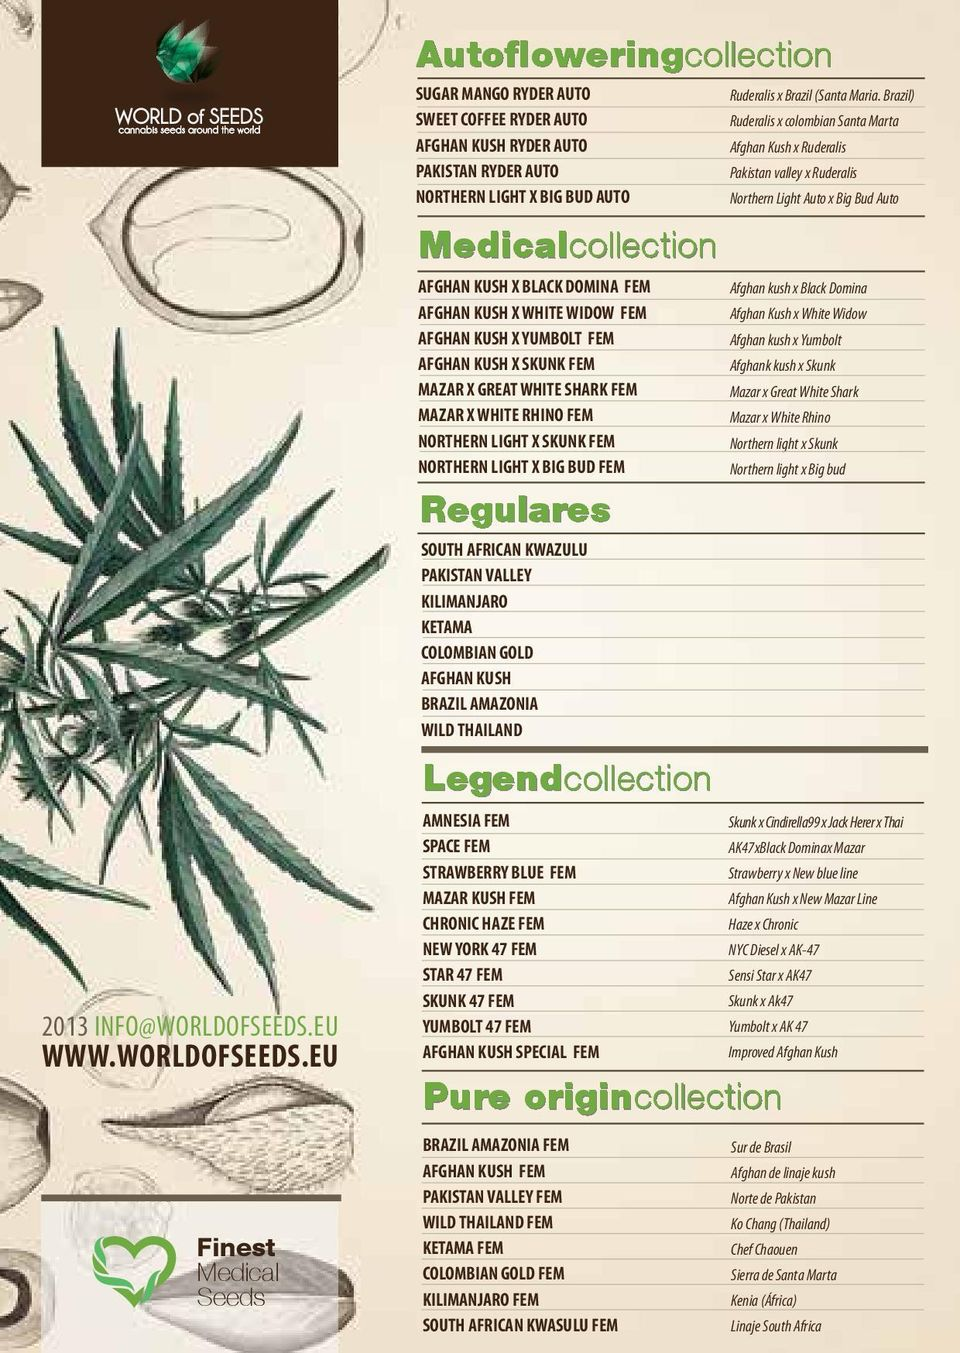 EU Autofloweringcollection SUGAR MANGO RYDER AUTO SWEET COFFEE RYDER AUTO AFGHAN KUSH RYDER AUTO PAKISTAN RYDER AUTO NORTHERN LIGHT X BIG BUD AUTO Medicalcollection AFGHAN KUSH X BLACK DOMINA FEM